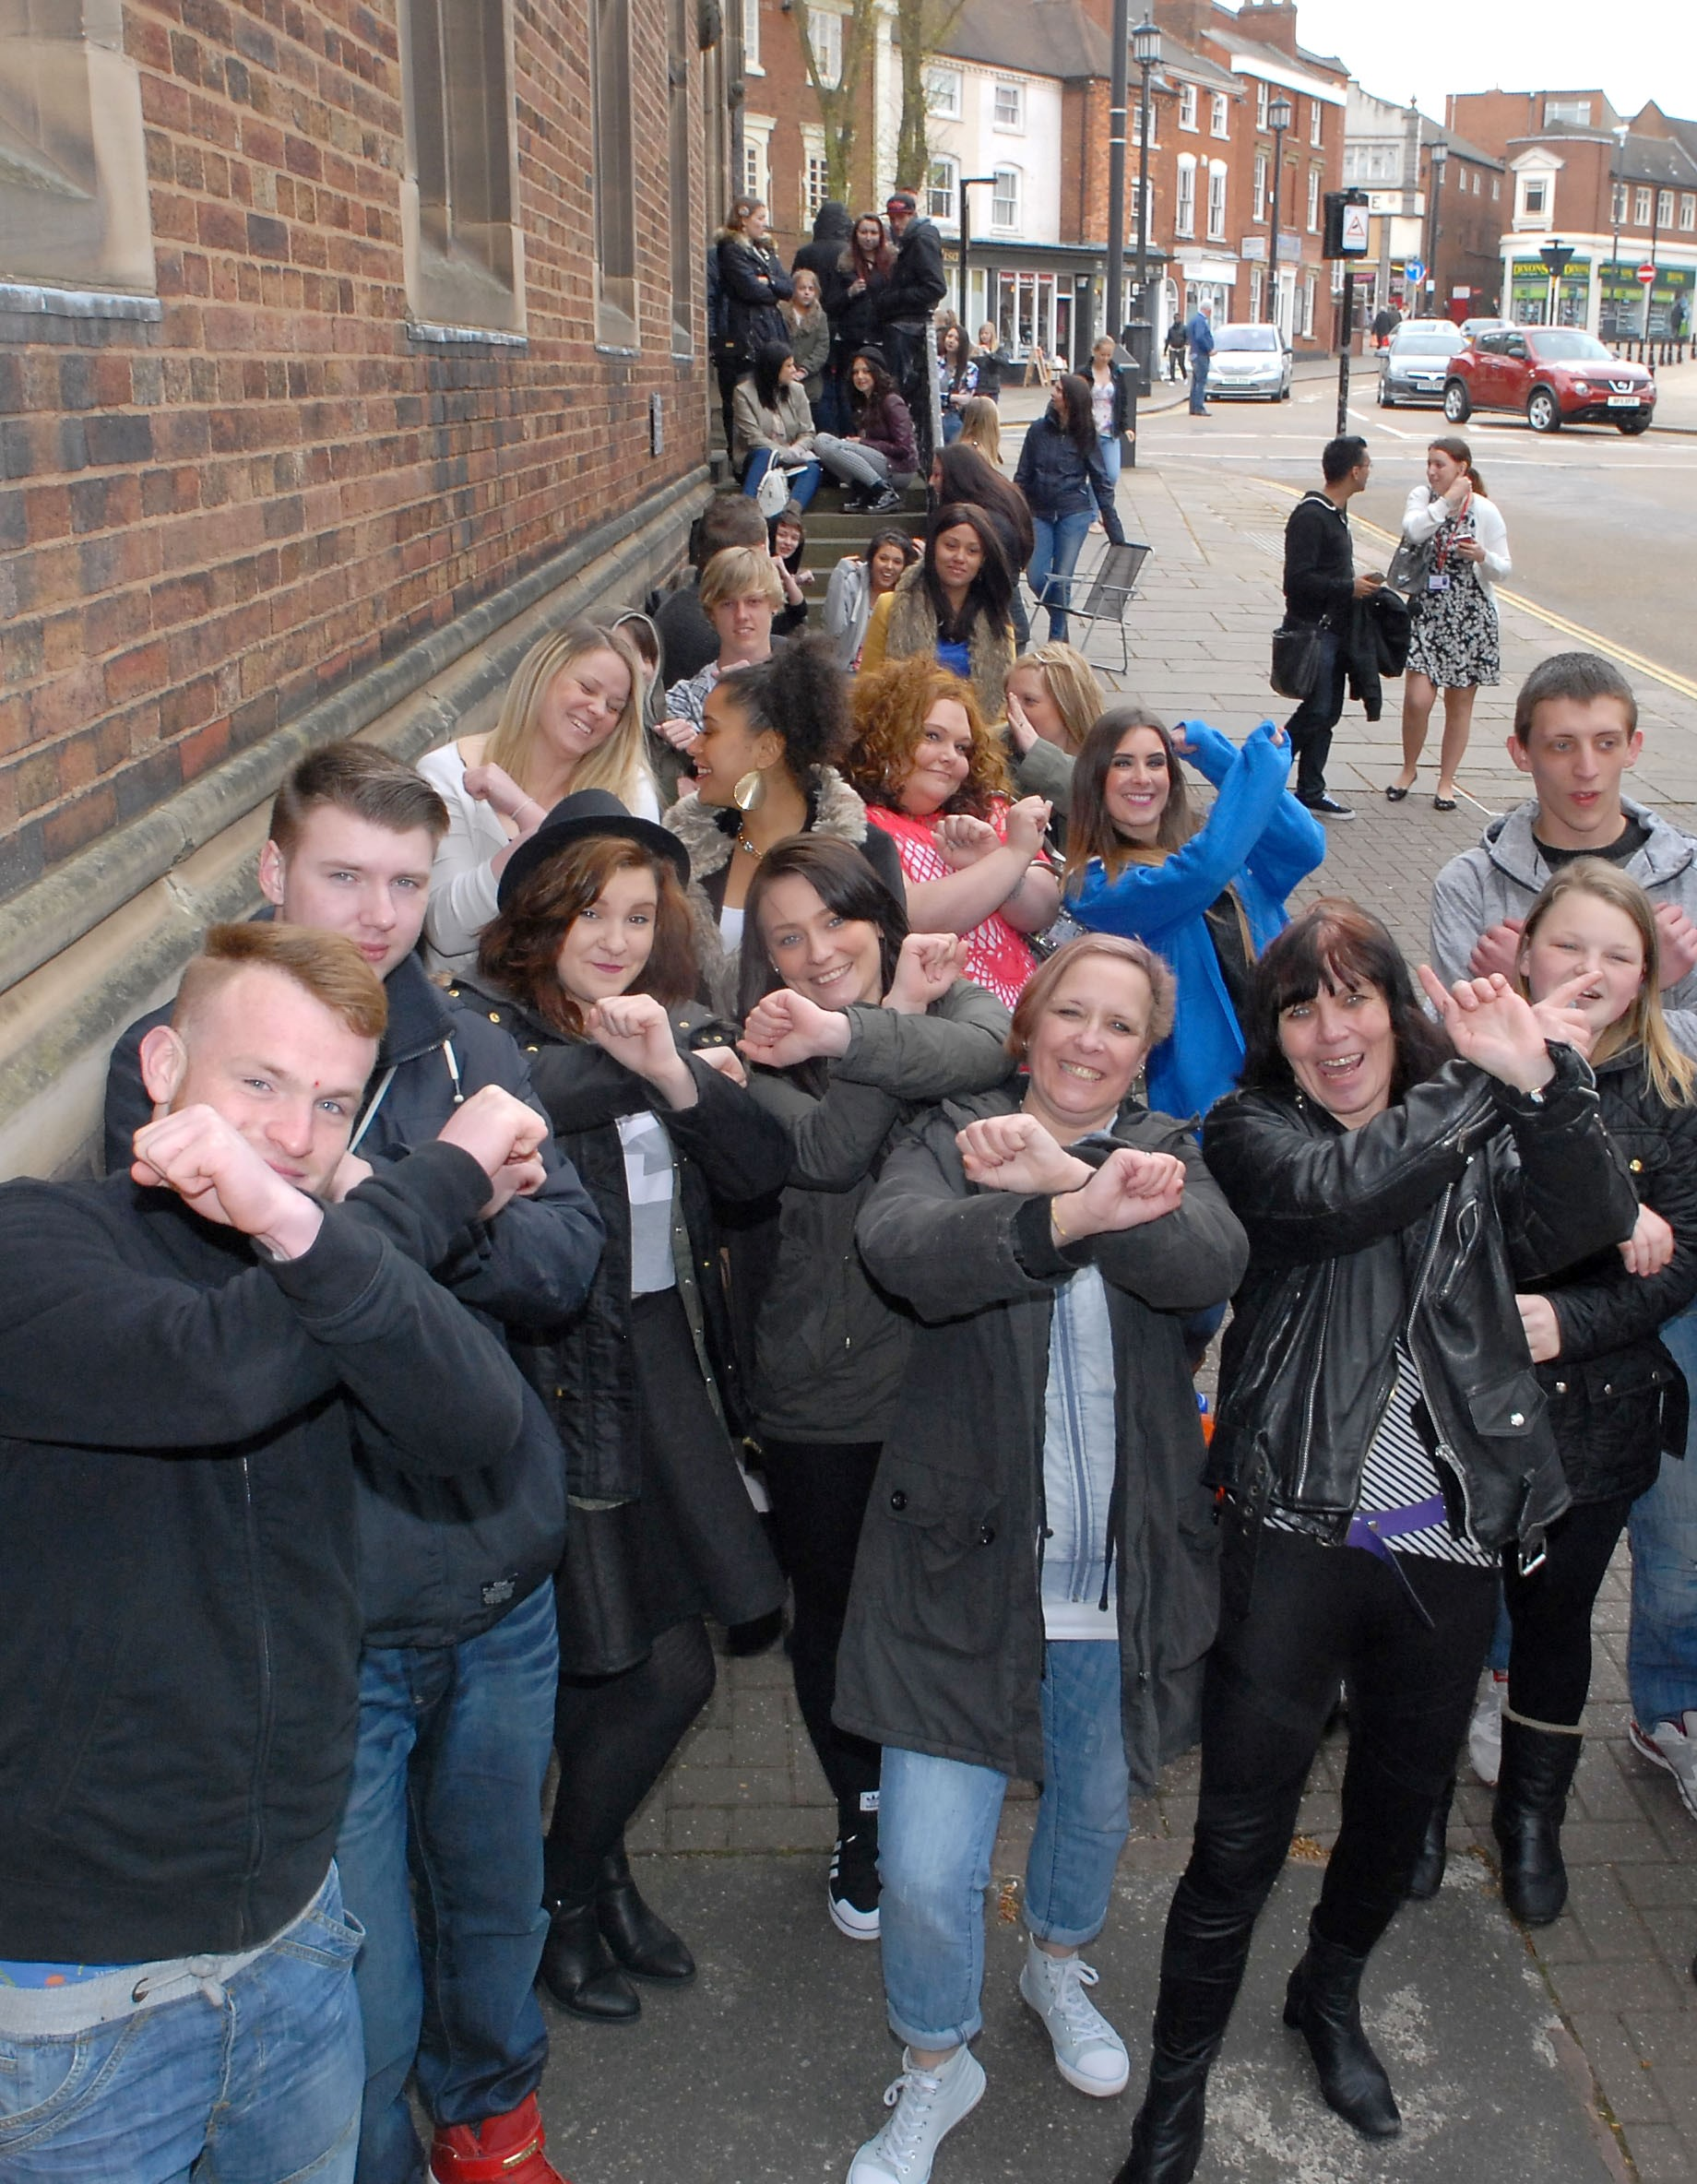 X Factor hopefuls in Dudley.